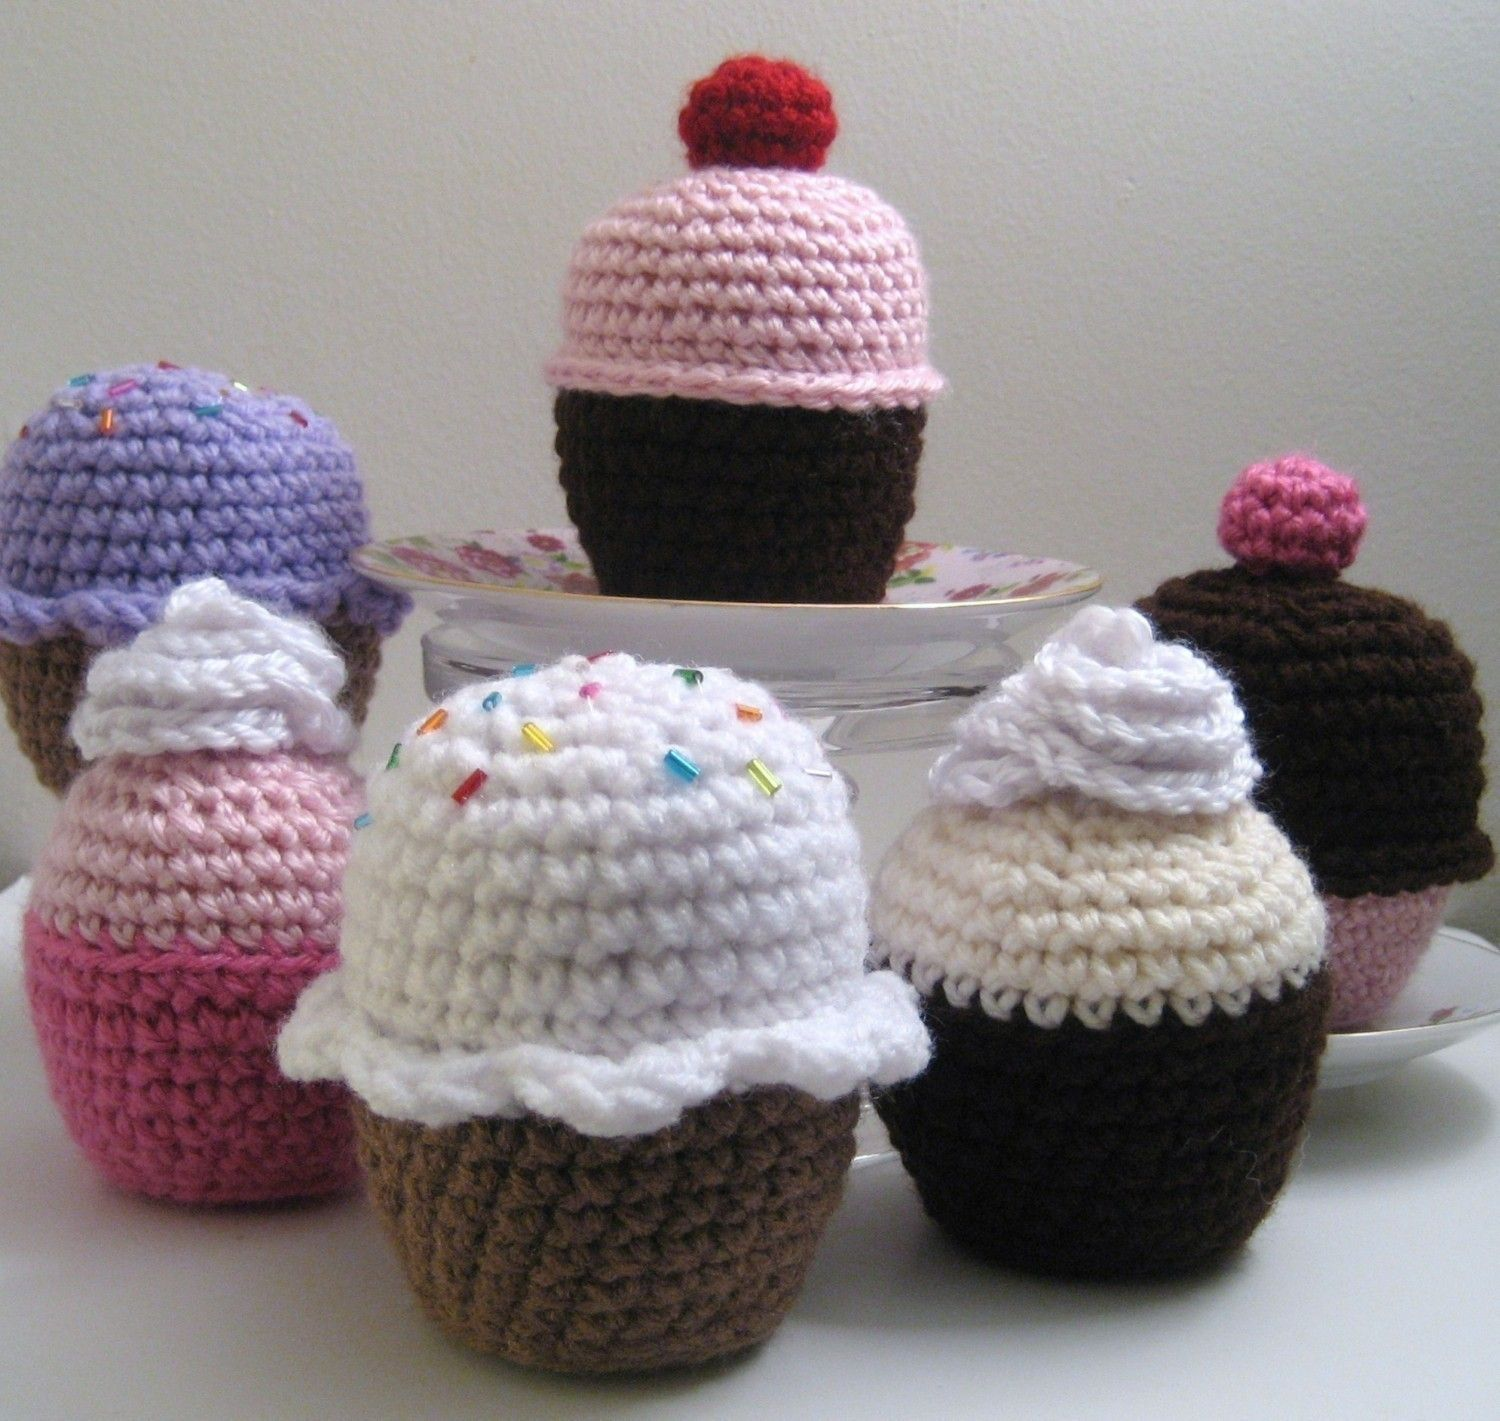 Amigurumi crochet cupcake pattern digital download amigurumi amigurumi crochet cupcake pattern digital download bankloansurffo Image collections